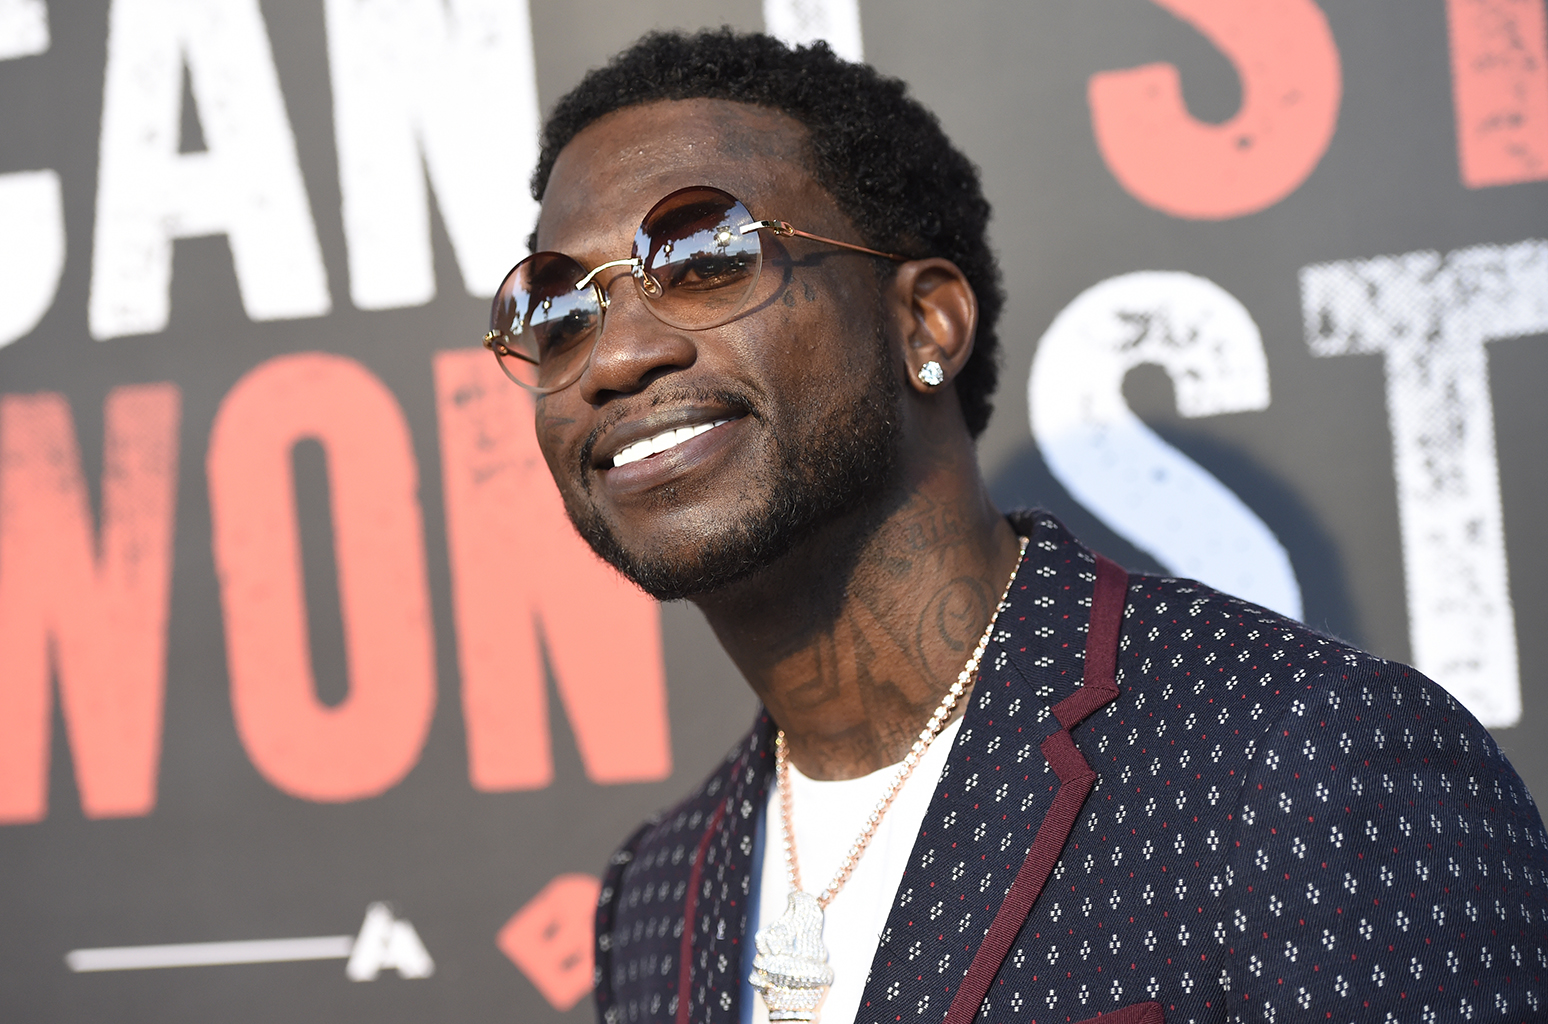 Gucci Mane Net Worth 2018: $15 Million | CelebJury